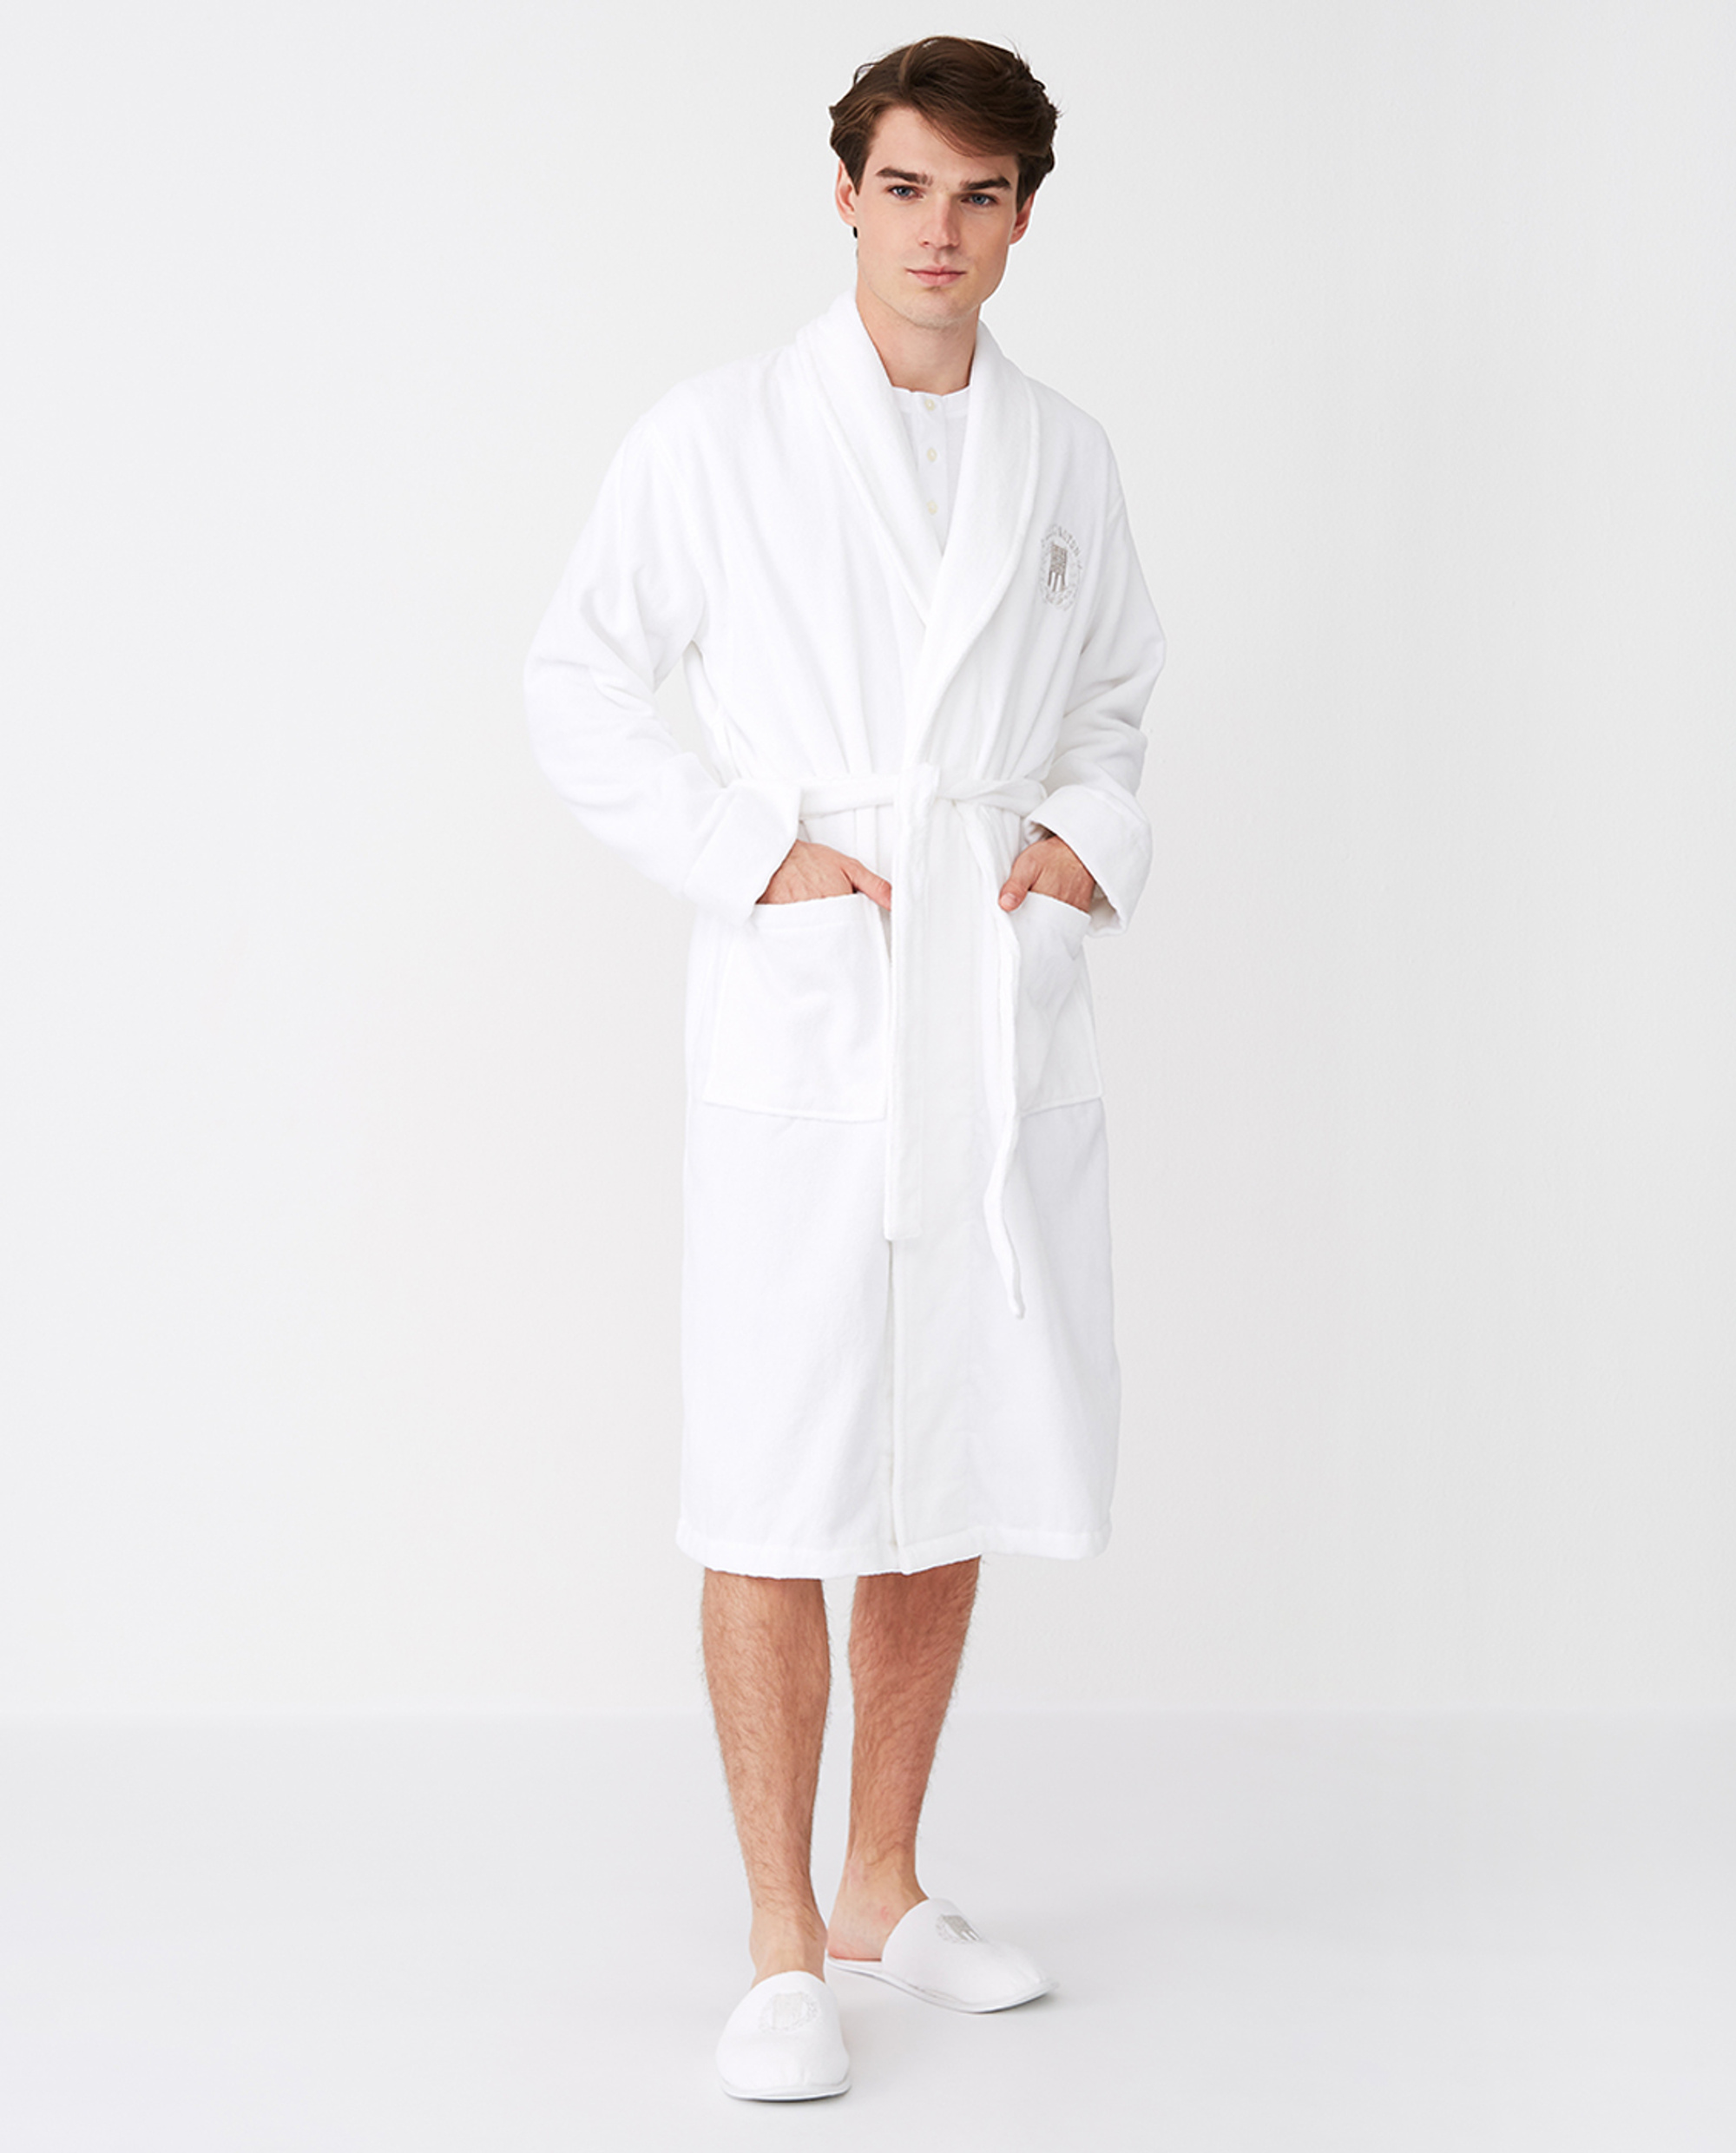 Unisex Hotel Velour Robe, White